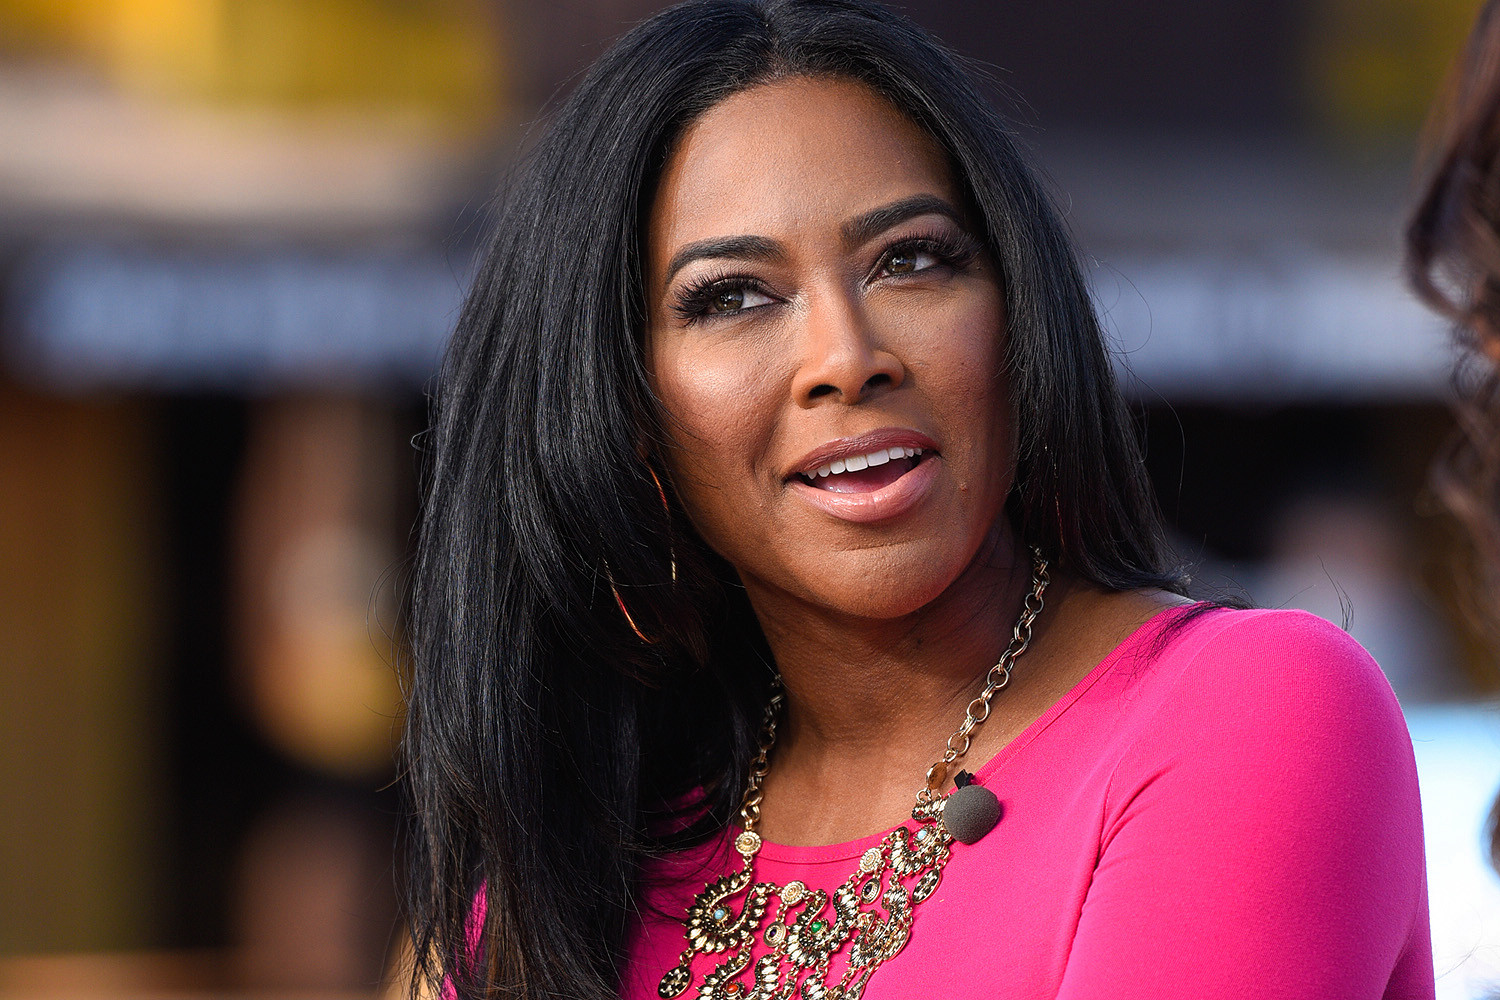 Kenya Moore Says She Has A Big Heart And Fans Profess Their Love Her